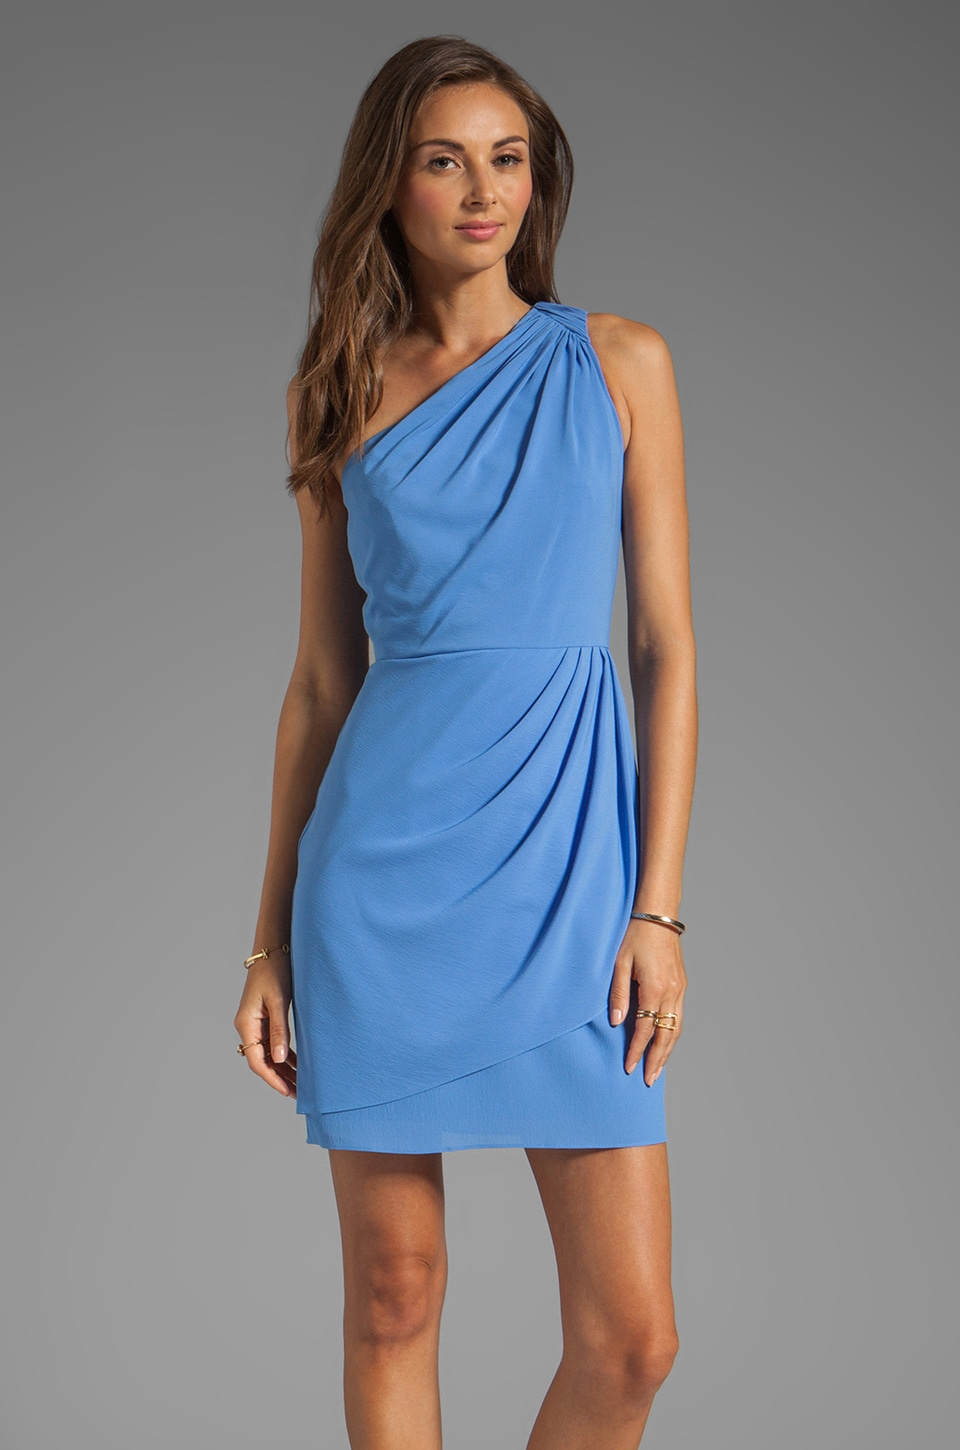 Shoshanna Julie Dress in Cornflower